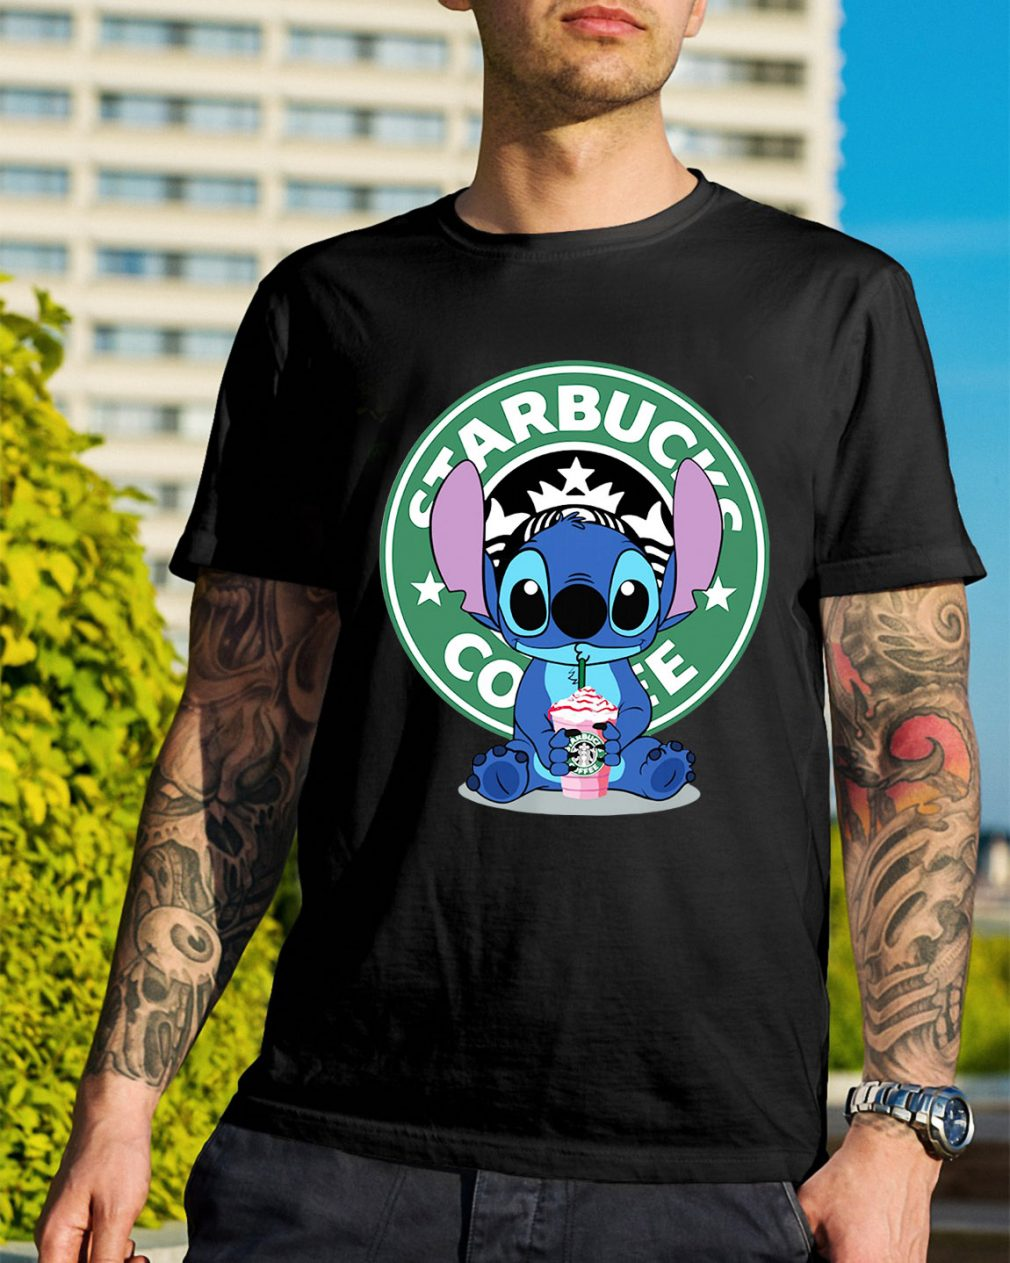 Stitch Starbucks coffee shirt